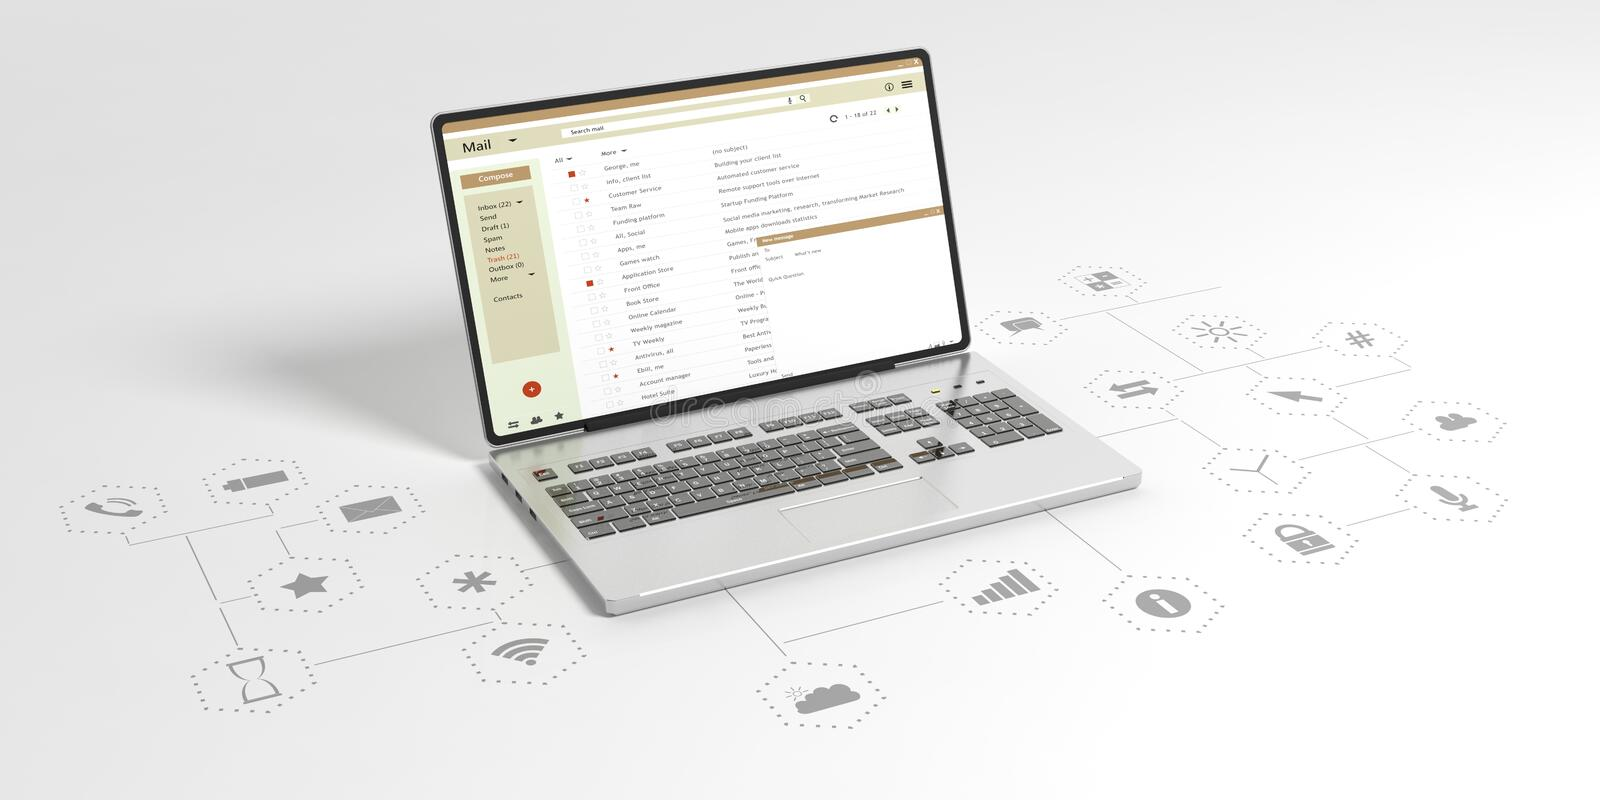 Email list on a computer laptop screen, white background with app icons. 3d illustration vector illustration